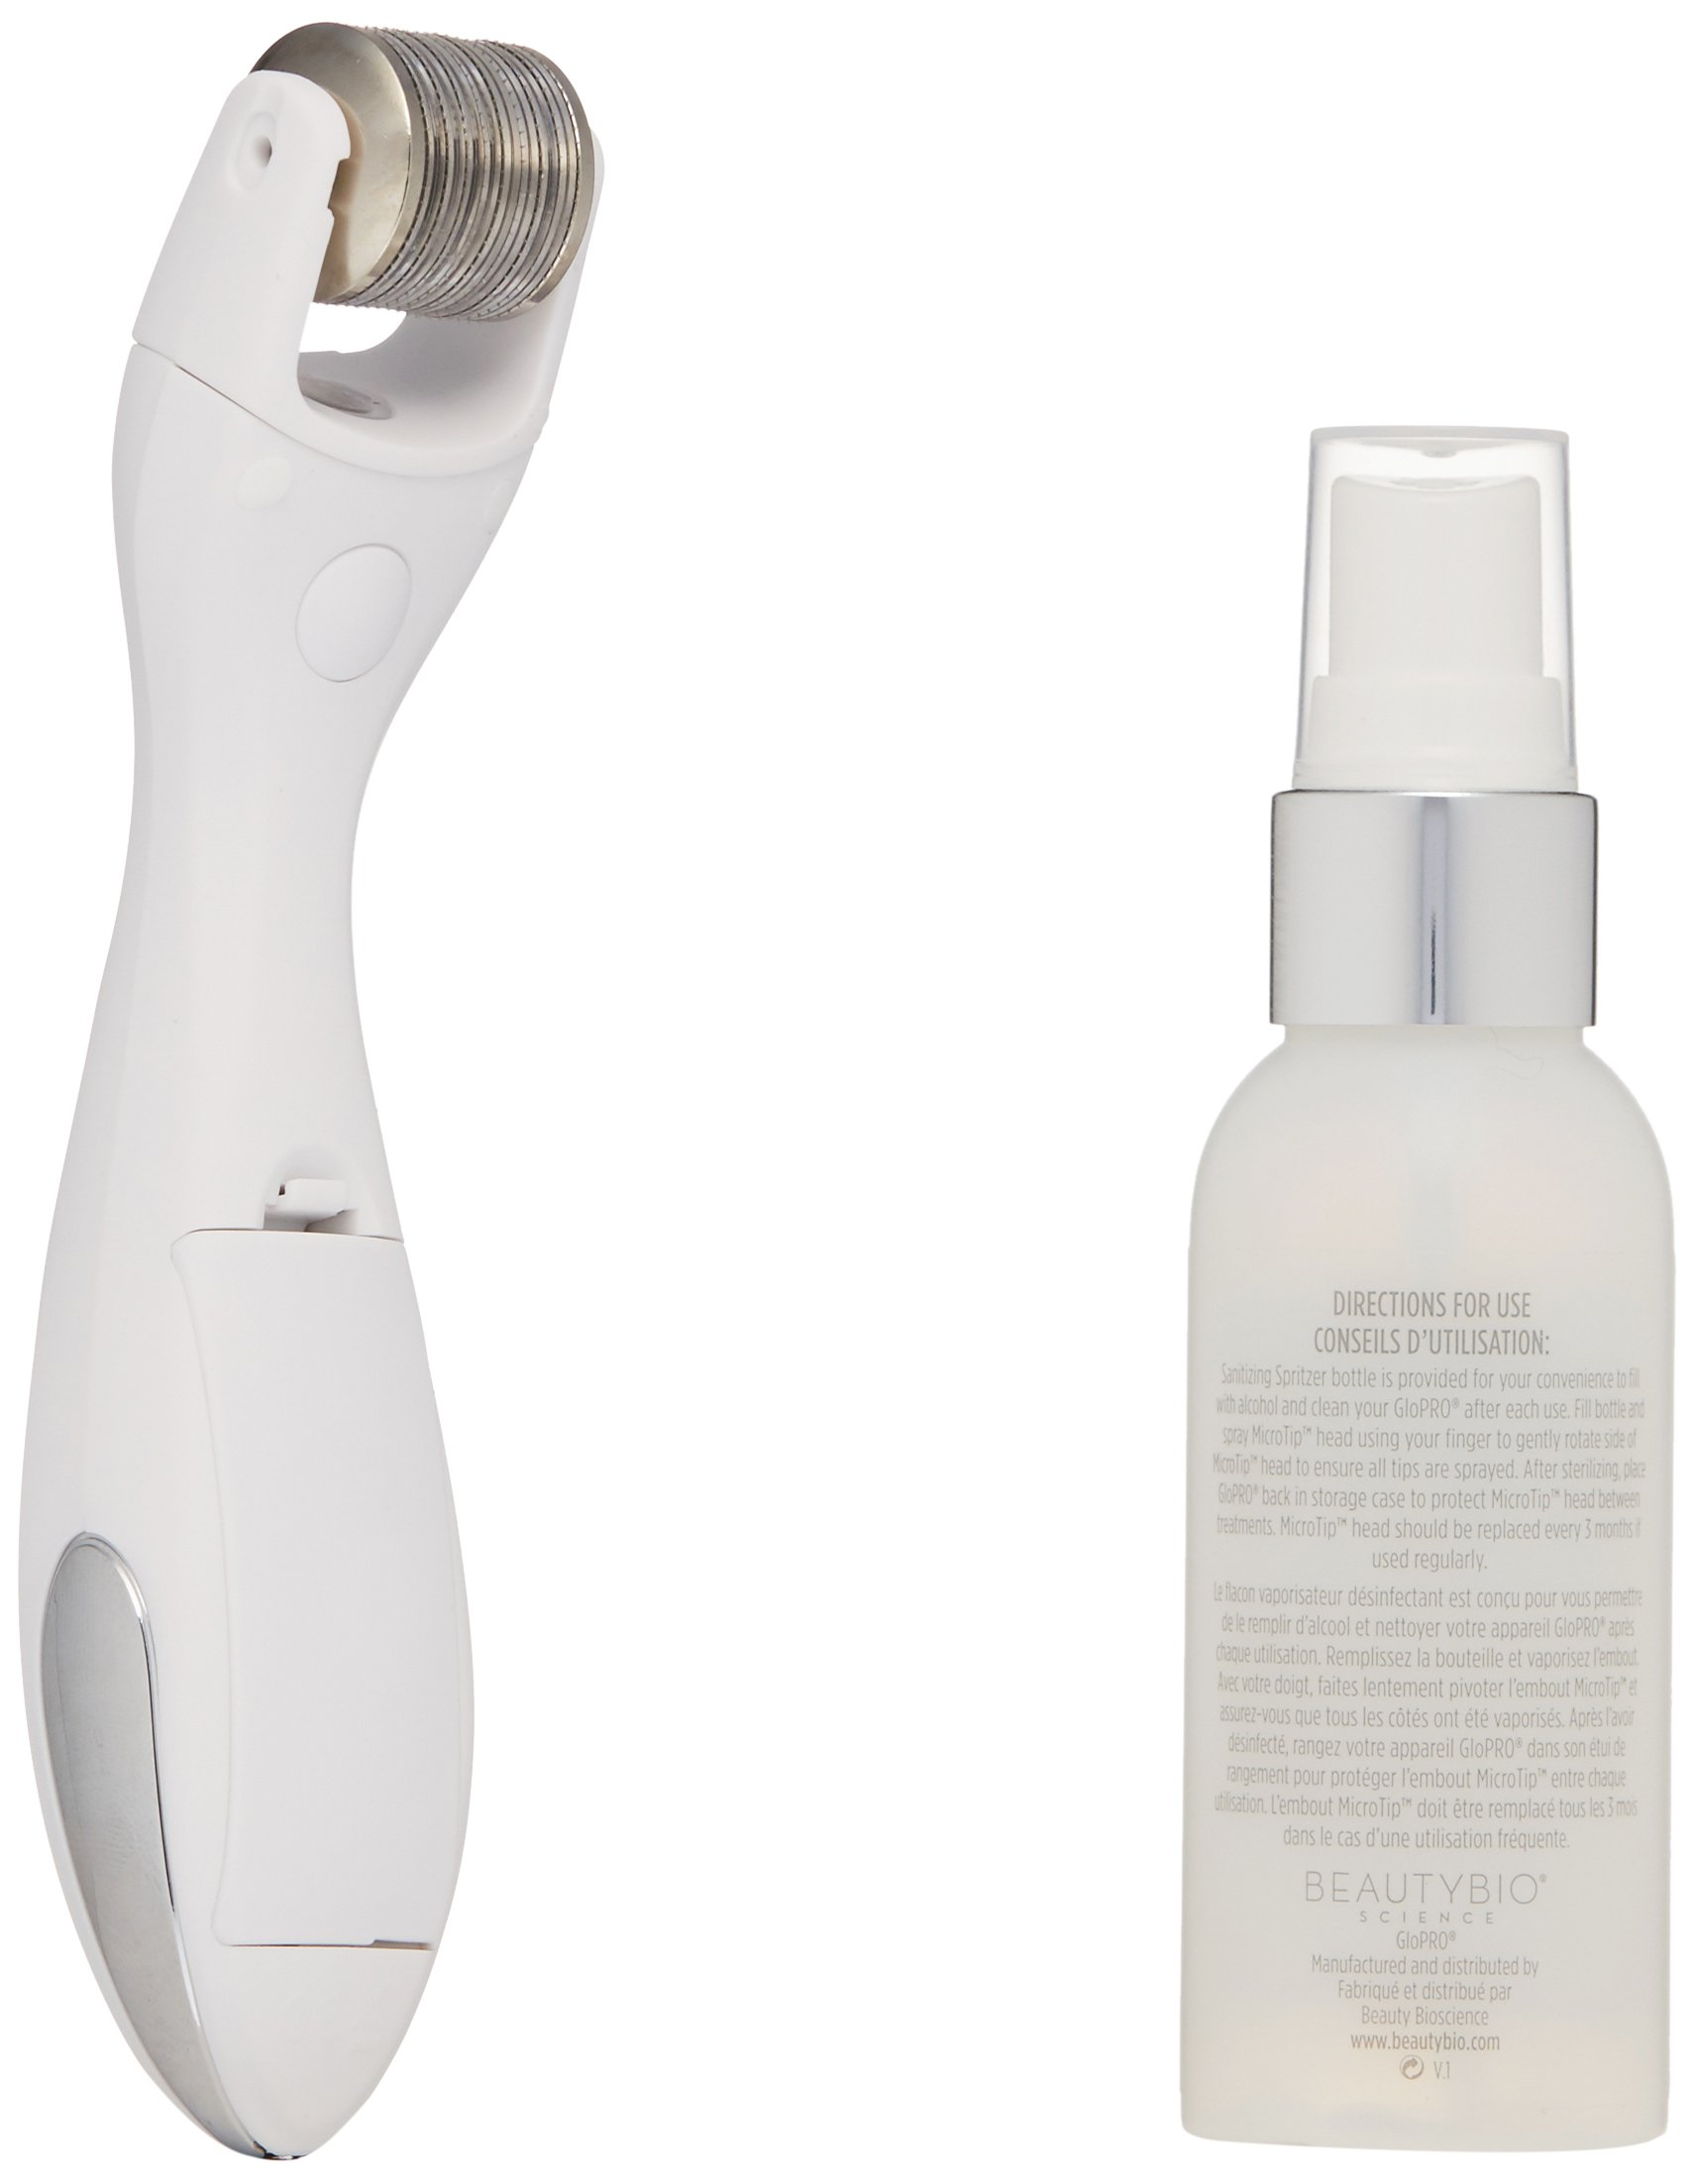 BeautyBio GloPRO Microneedling Tool and Face MicroTip Attachment Head by Beauty BIO (Image #6)